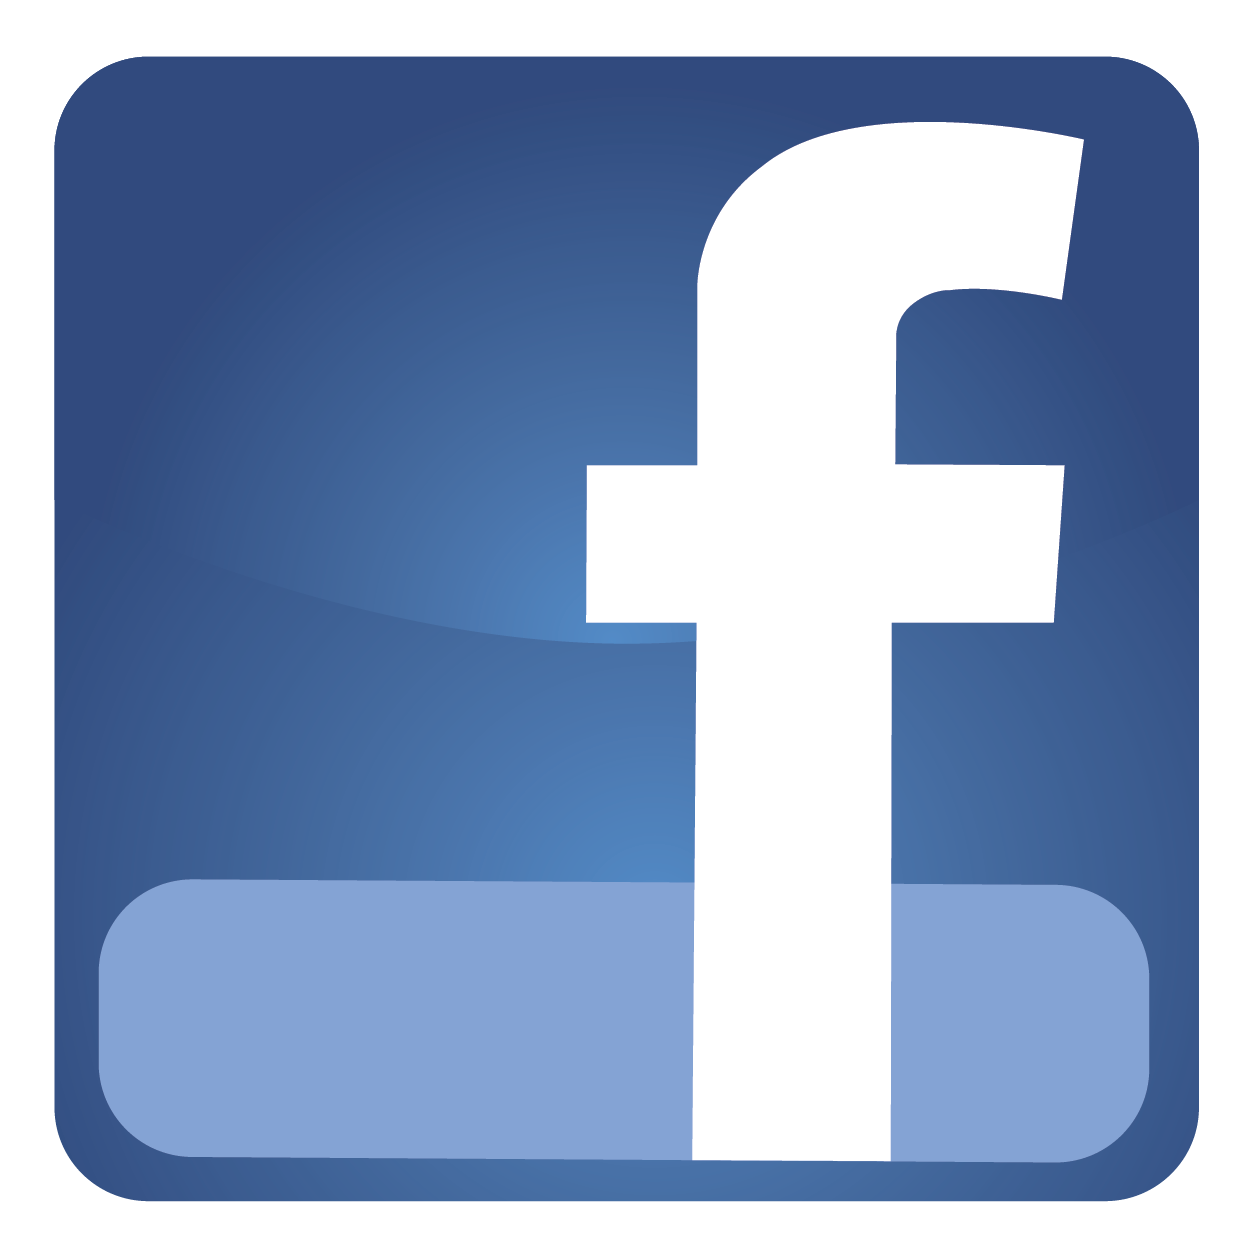 facebook logo click box